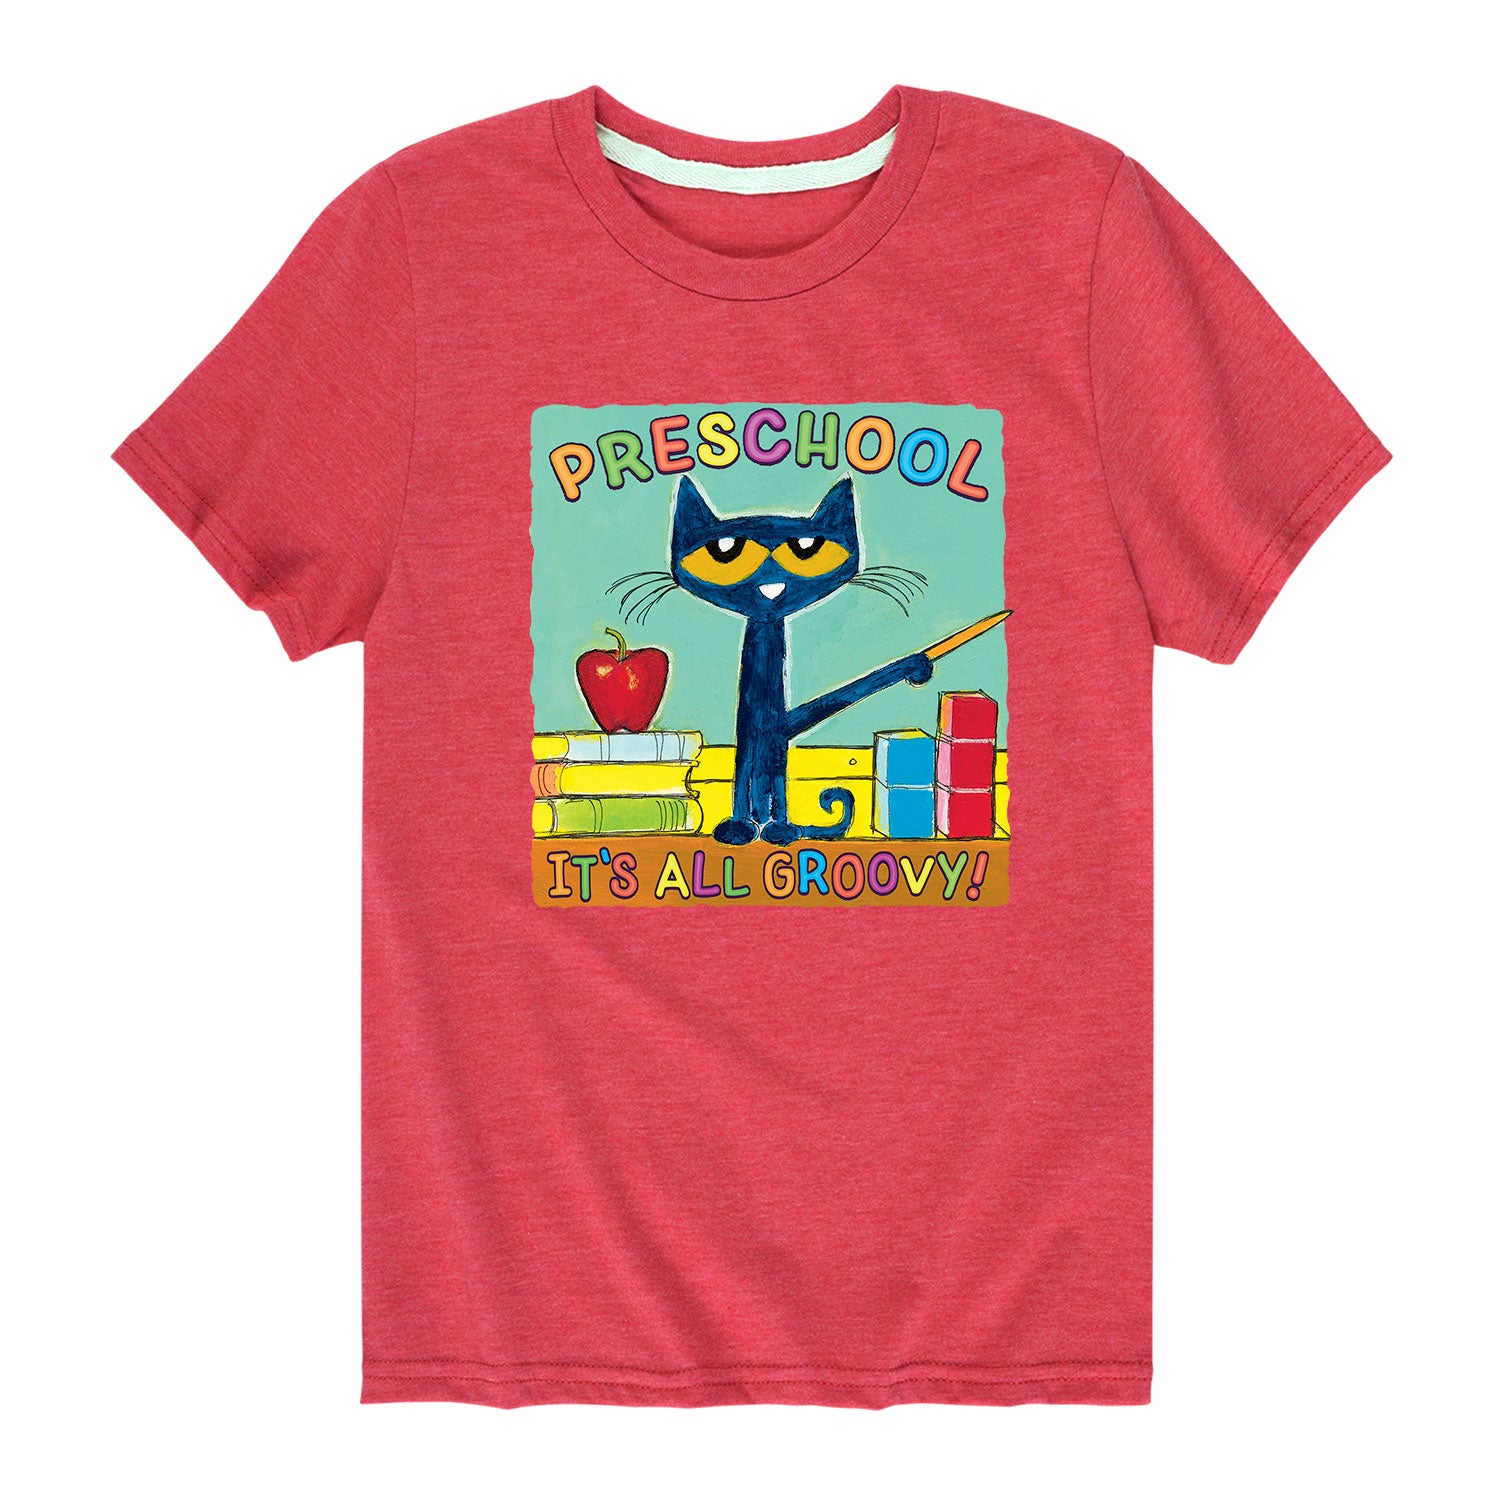 Pete The Cat Preschool It's All Groovy - Toddler Short Sleeve T-Shirt